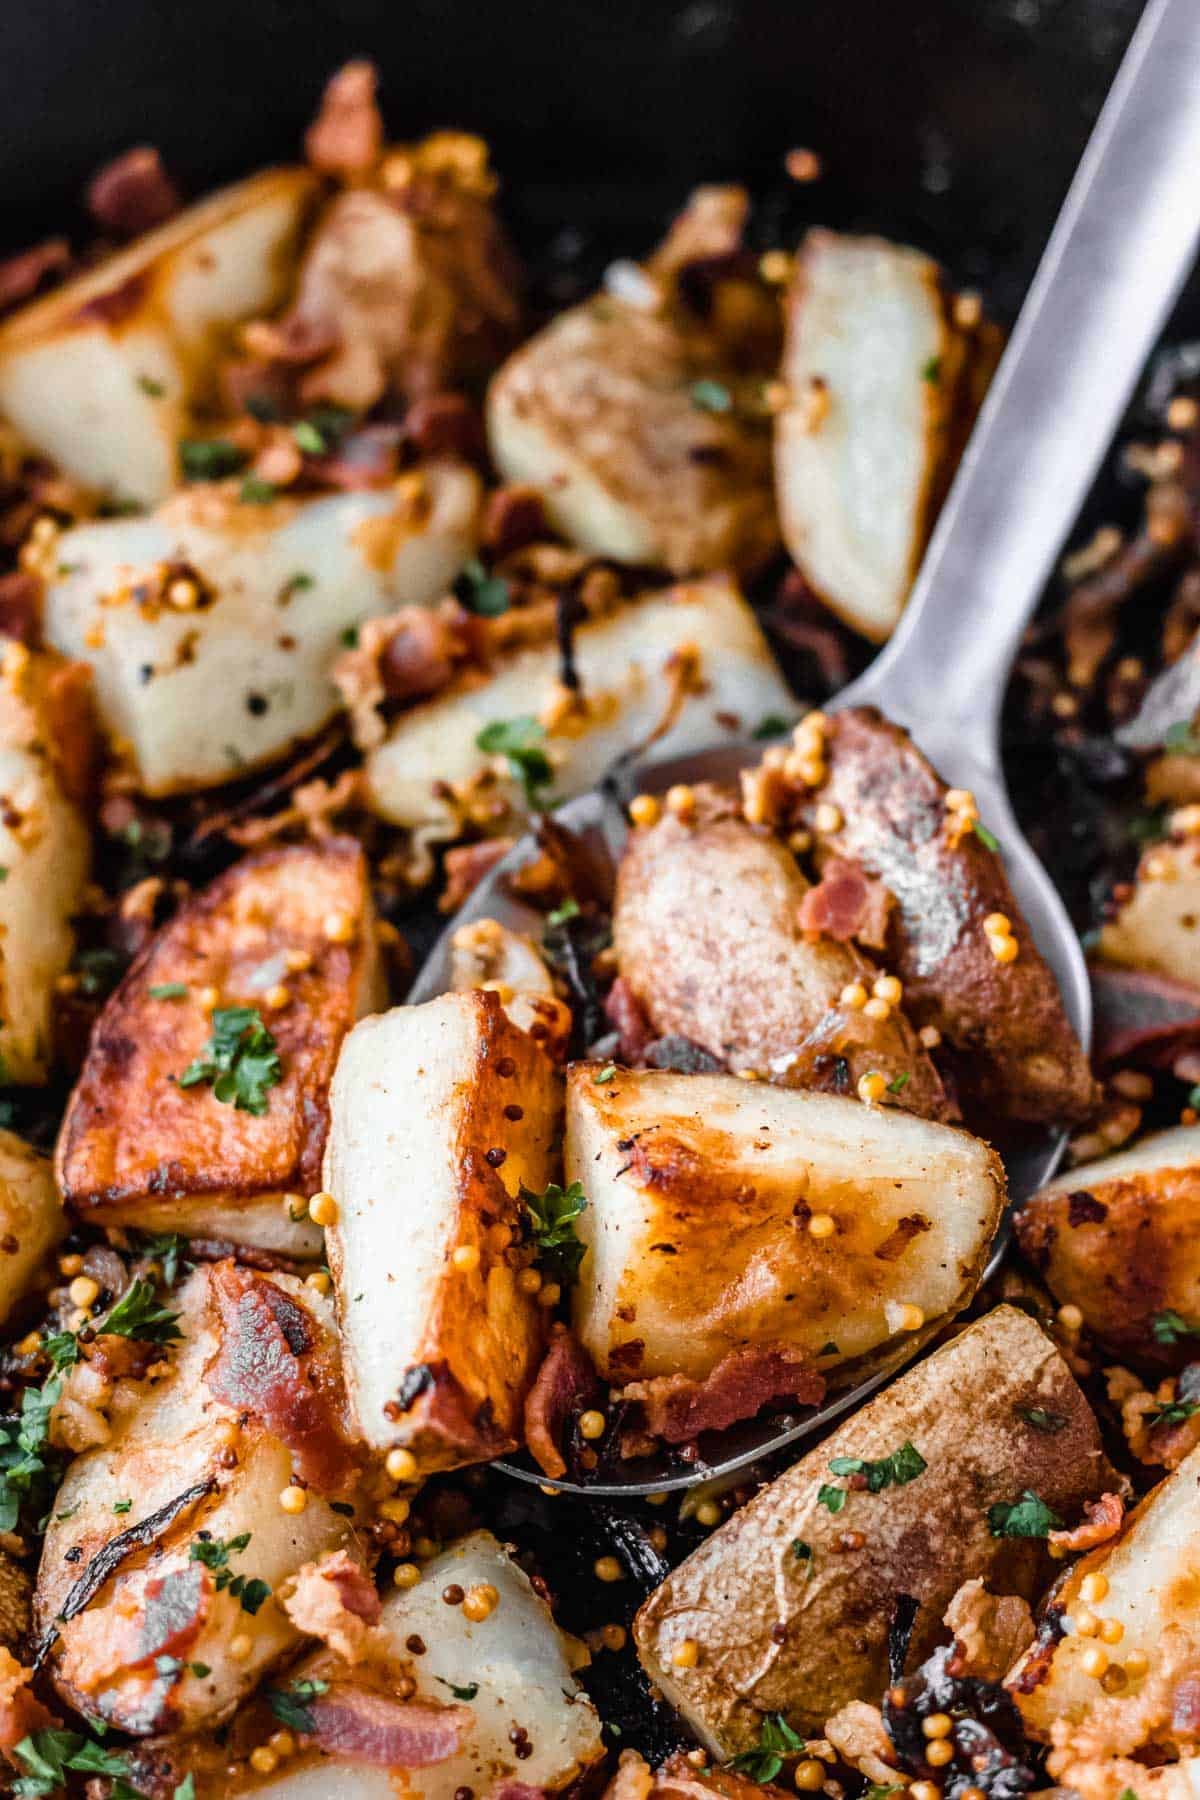 CLose up of a silver spoon with bacon roasted potatoes, caramelized shallots, mustard and parsley